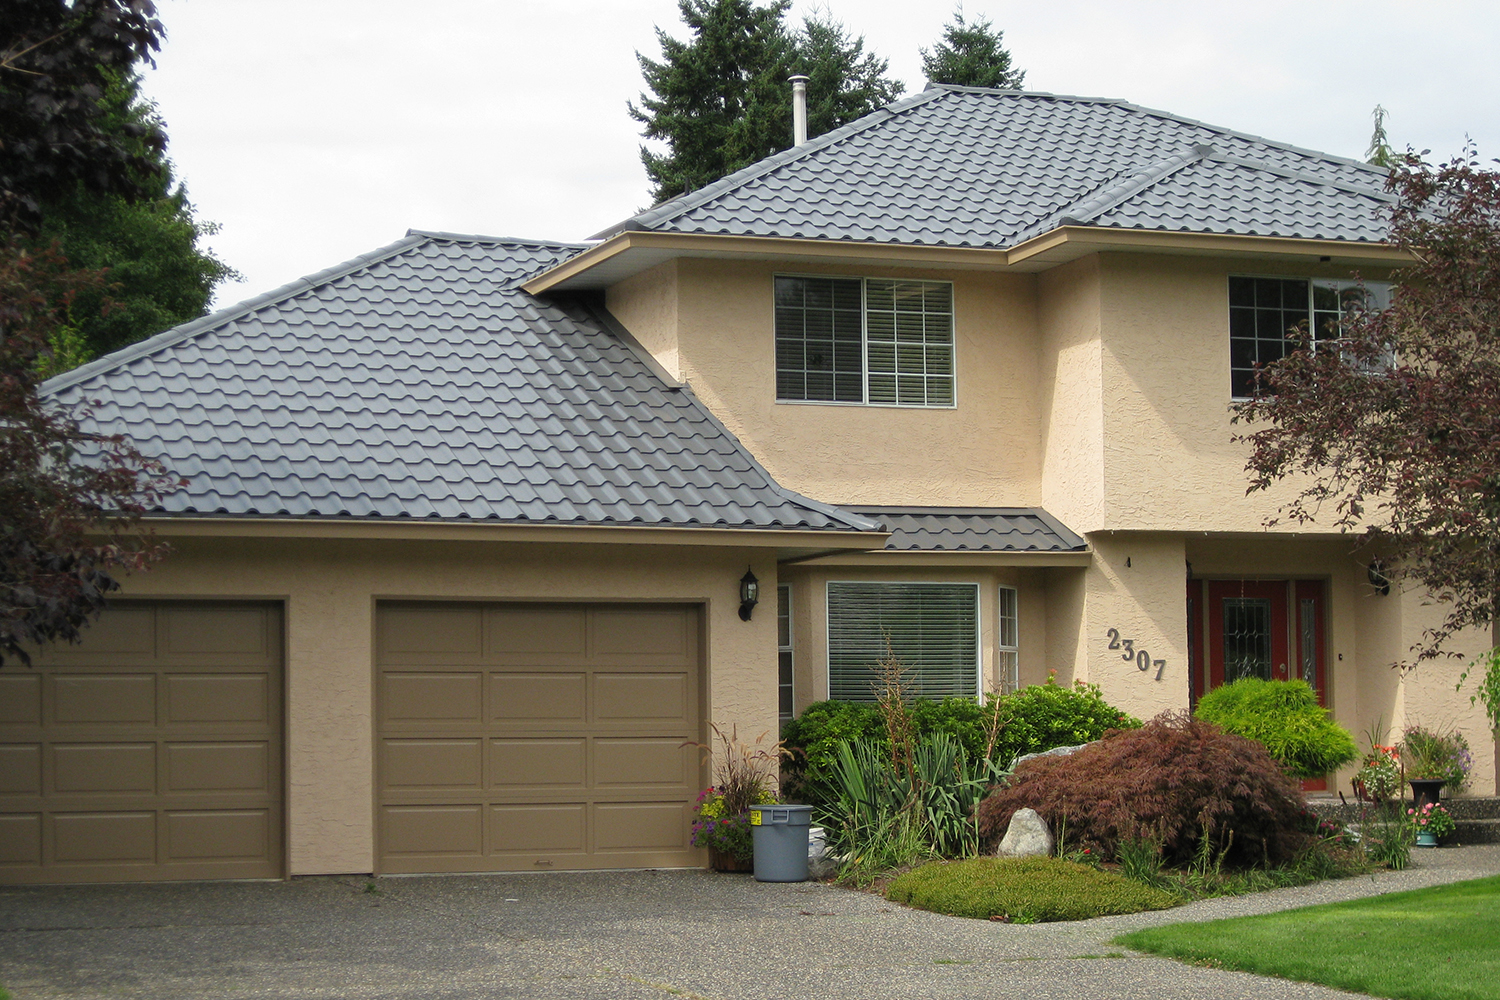 Interlock 174 Tile Roof System 187 Your Next Roof